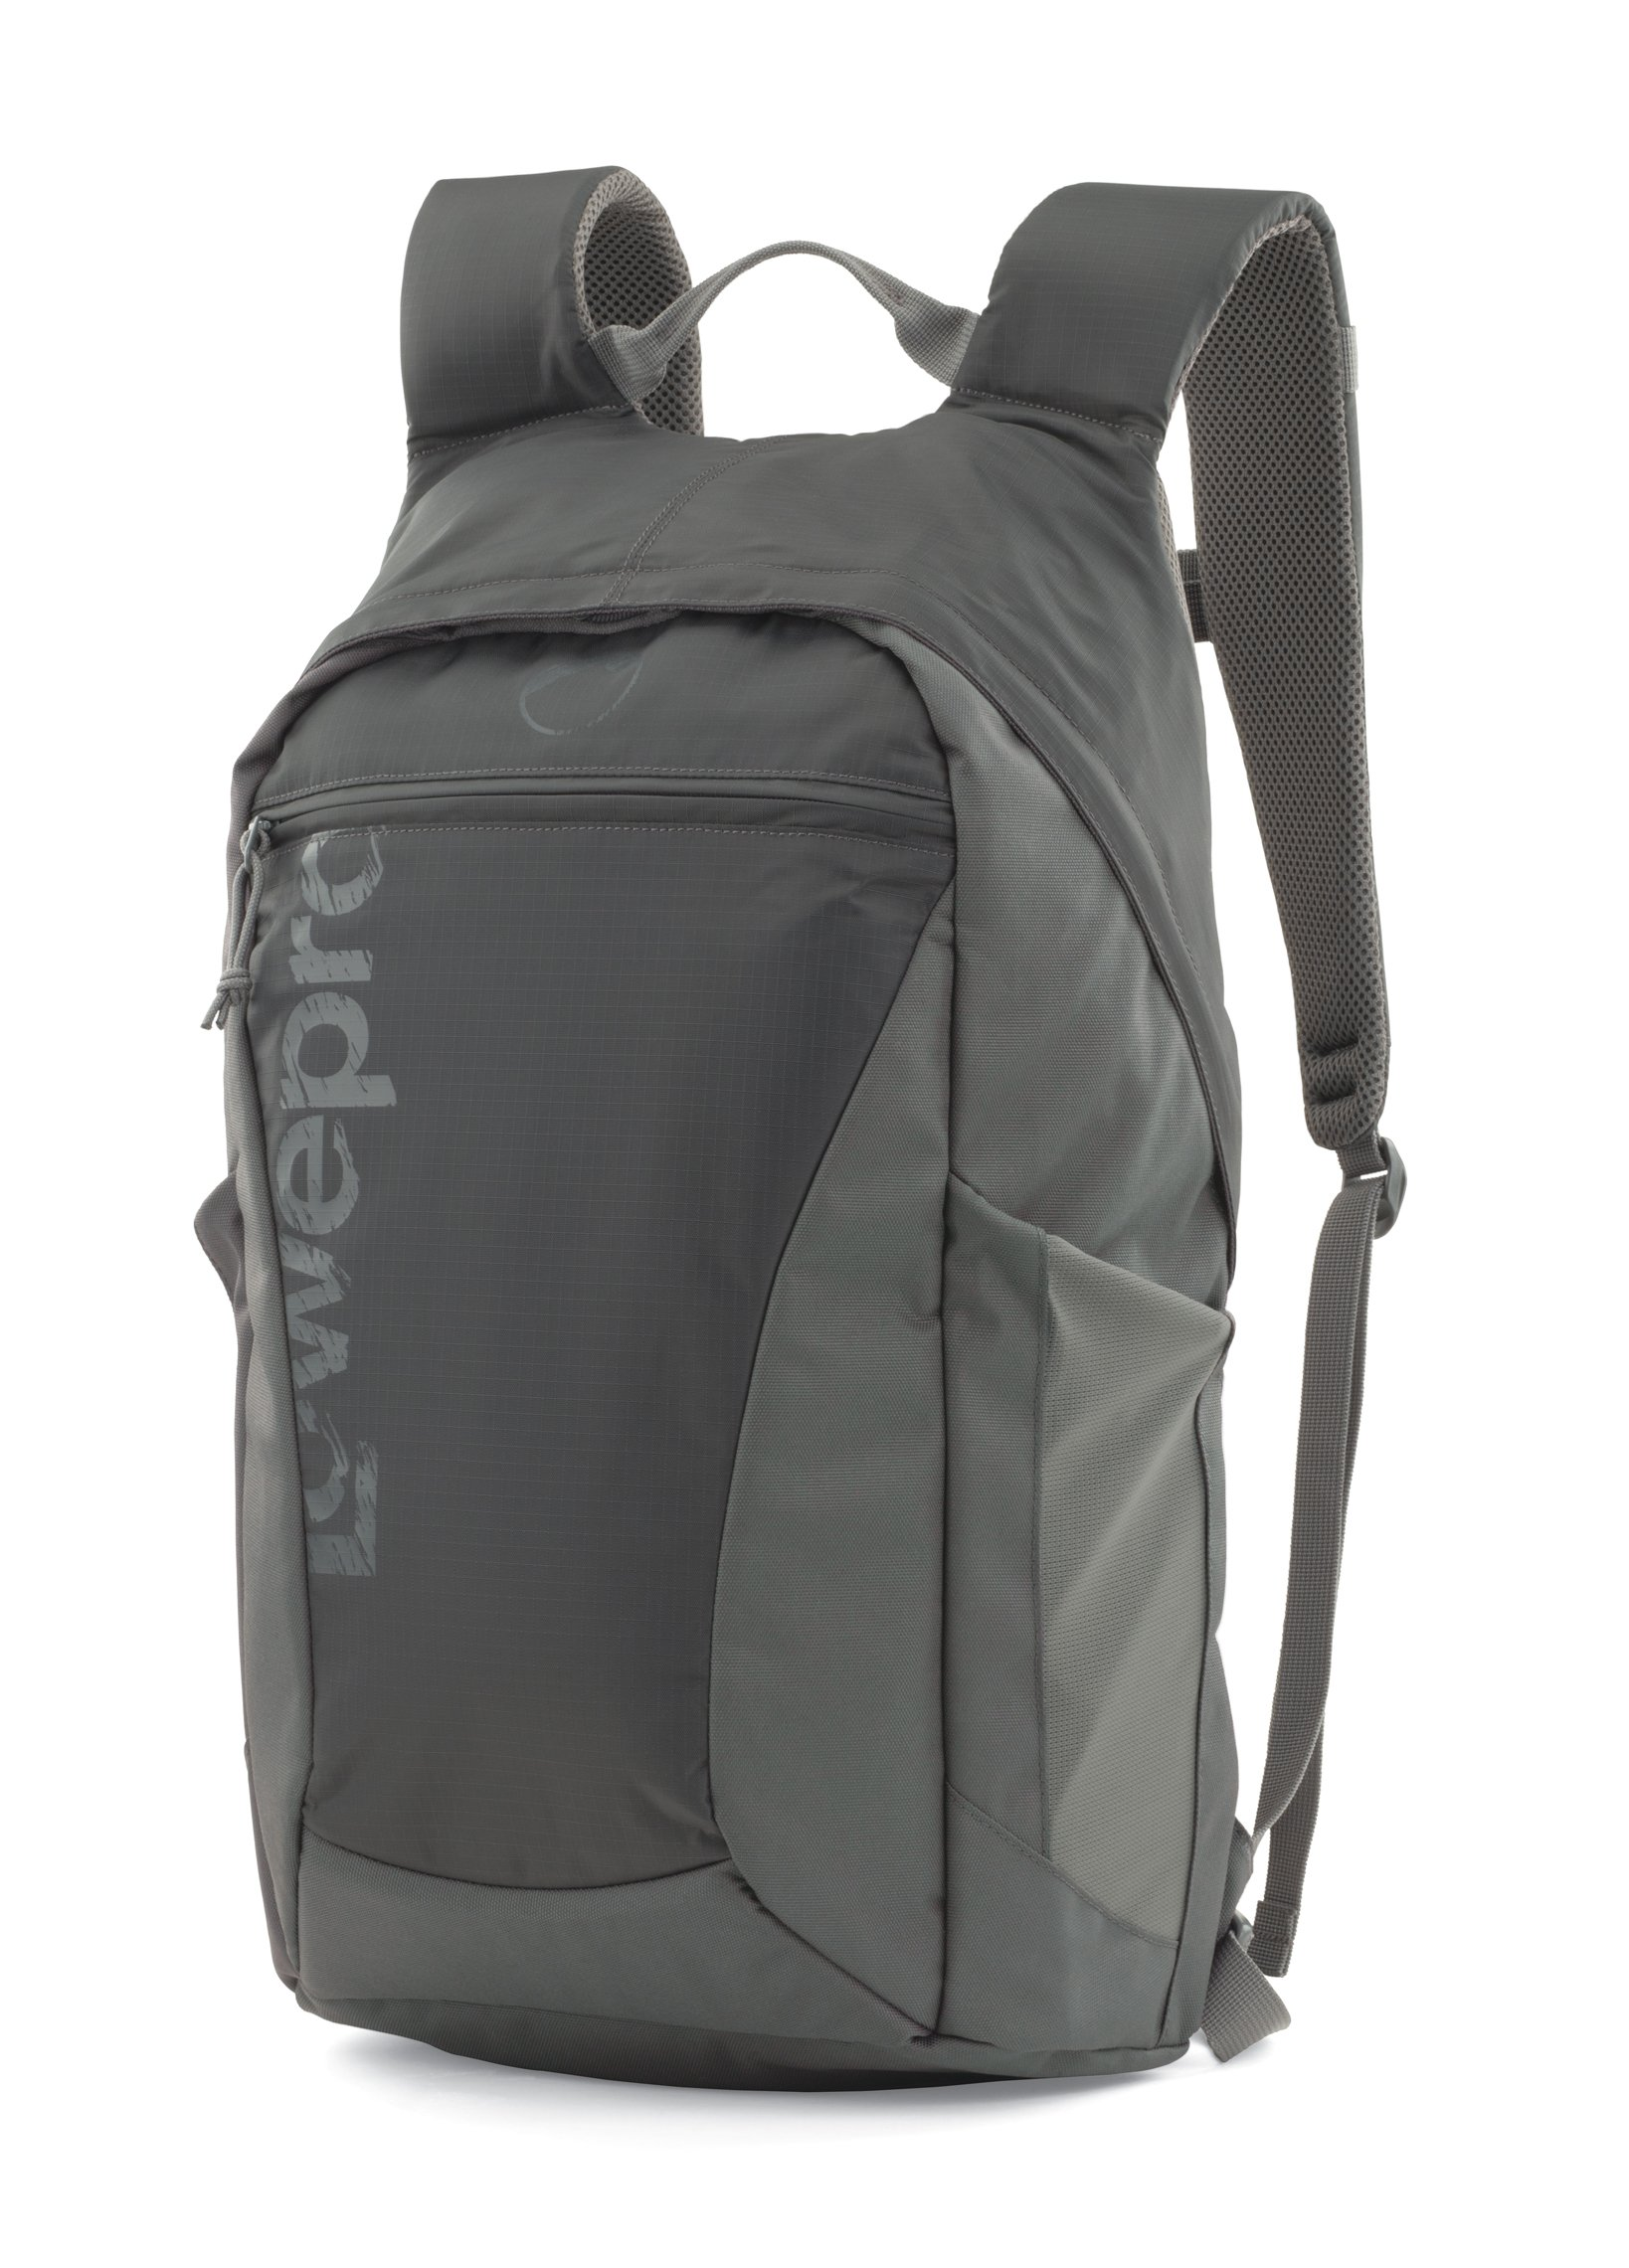 Lowepro Photo Hatchback 22L AW. Outdoor Day Camera Backpack for DSLR and Mirrorless Cameras by Lowepro